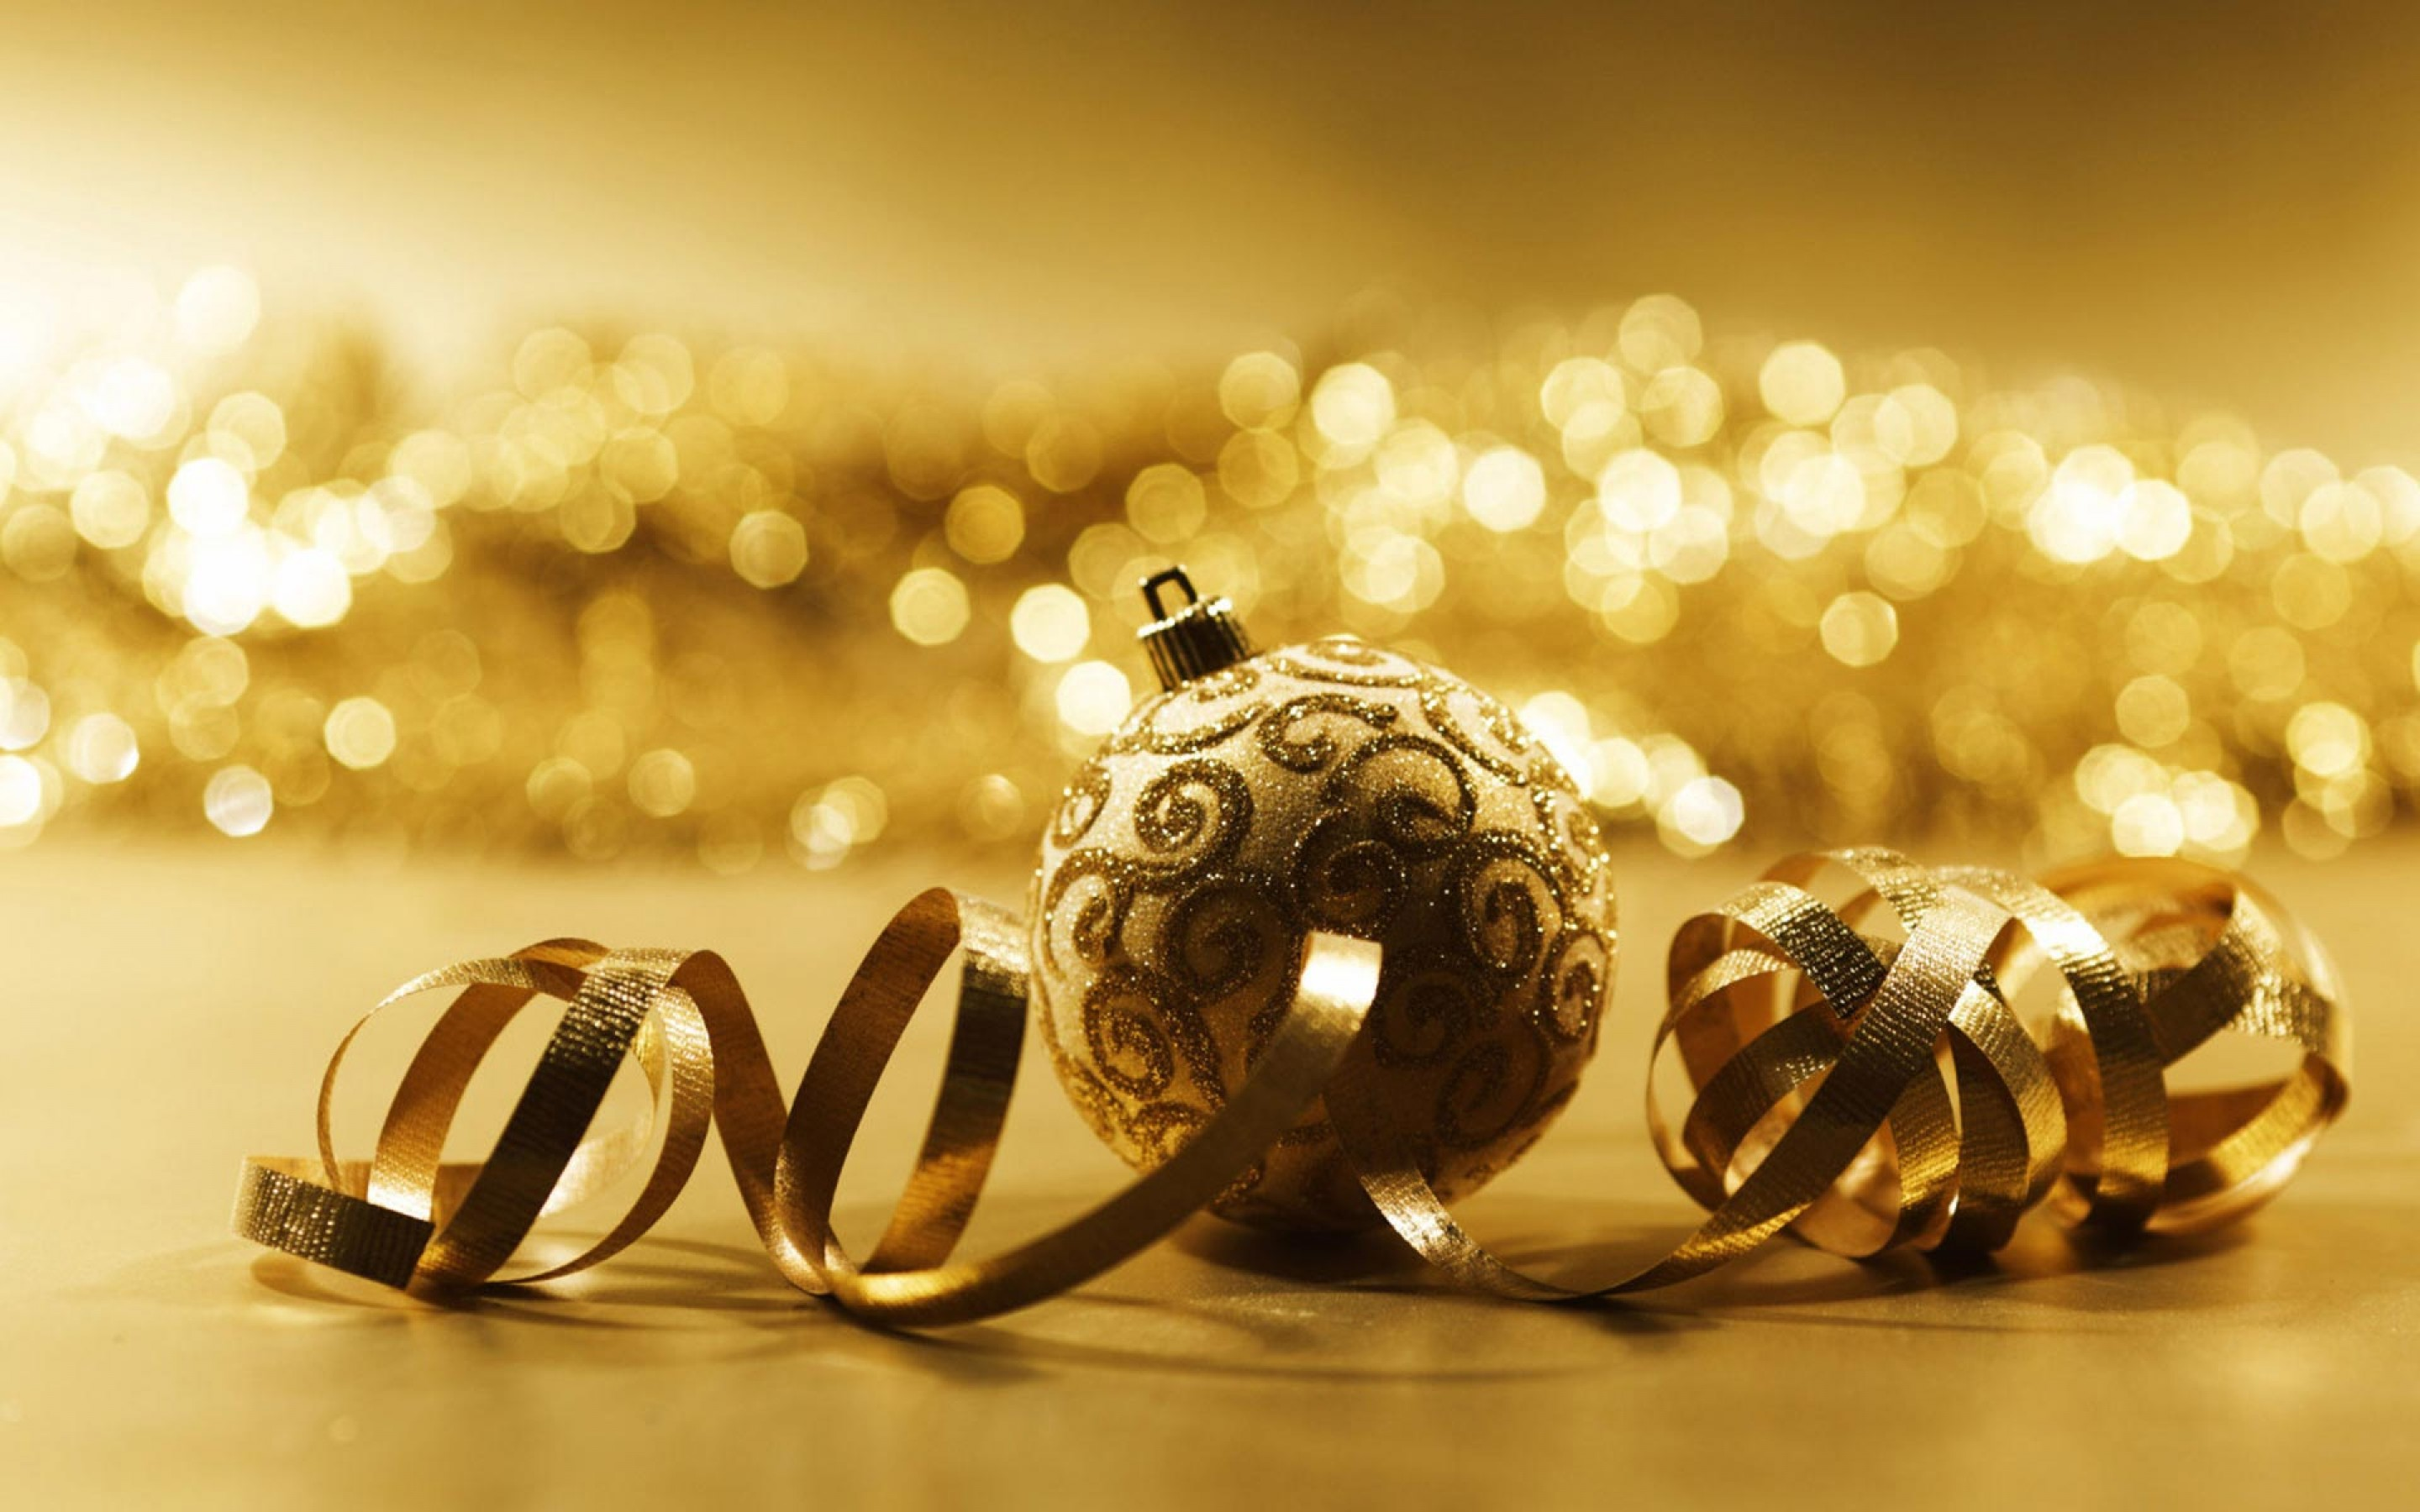 free-desktop-Wallpaper-beautiful-superb-super-cool-wallpapers-wide-screen-download-hd-Golden-Christmas-2-2880x1800